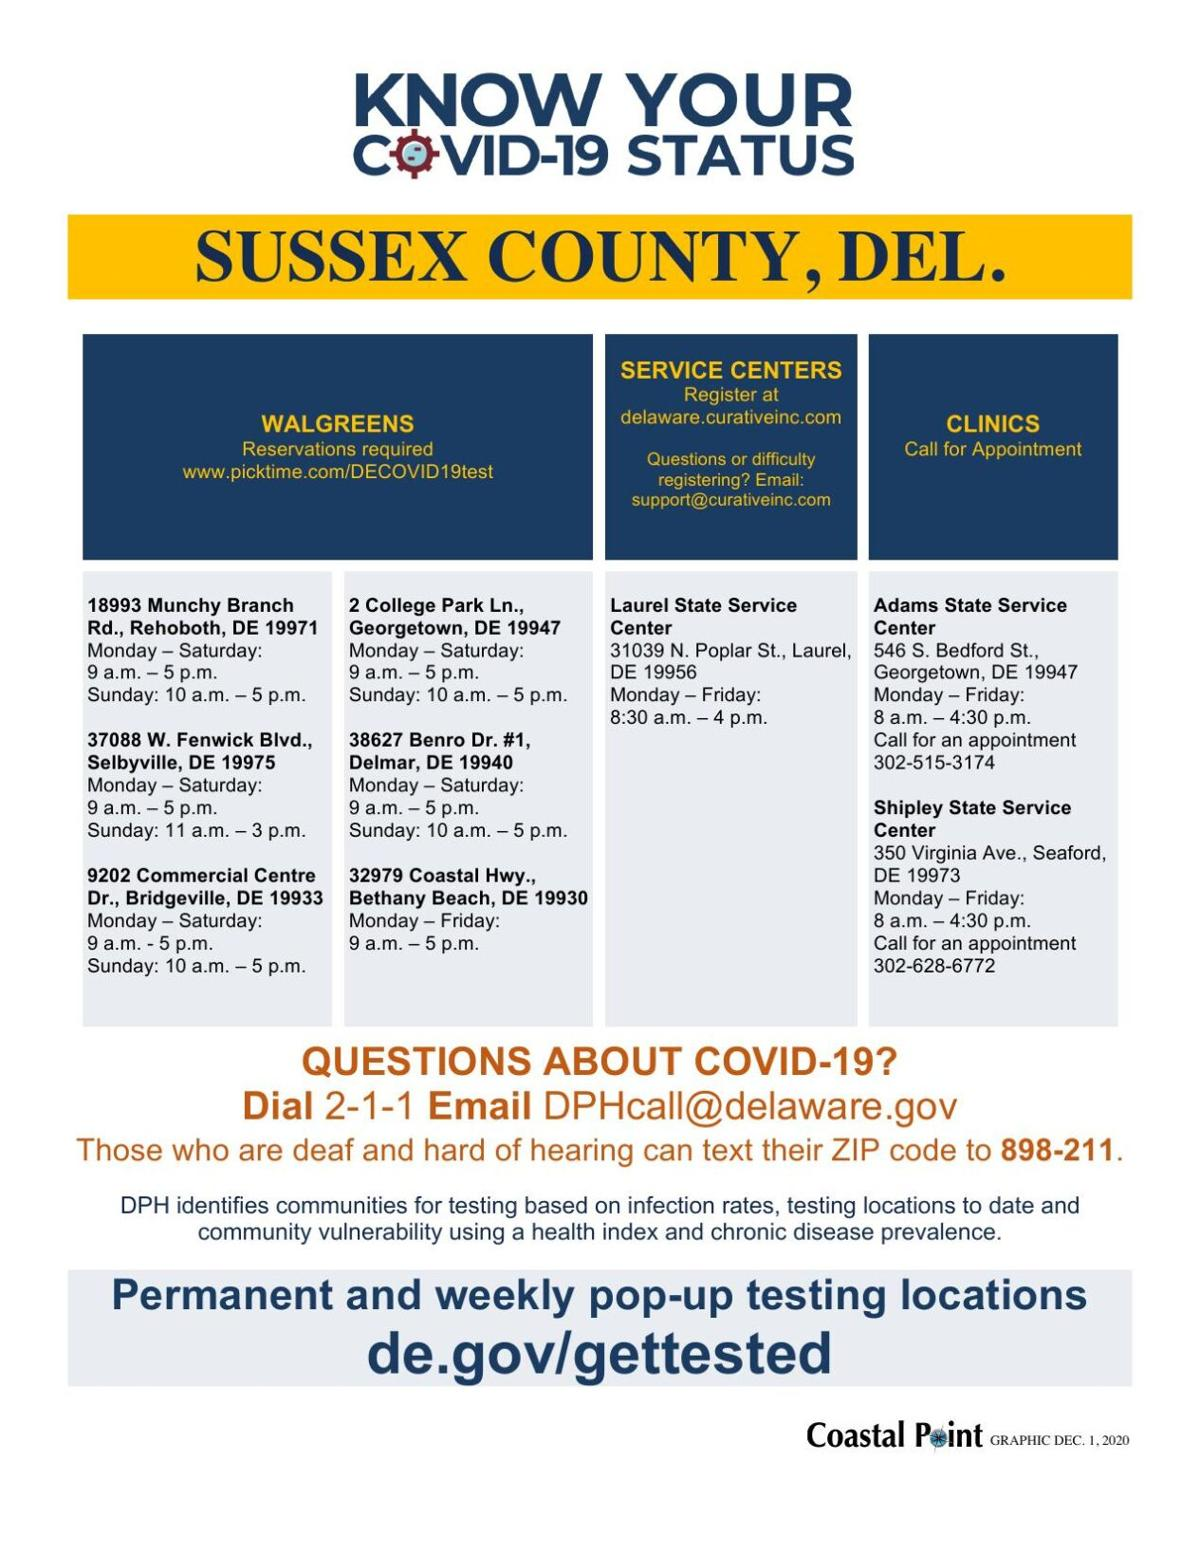 Sussex County COVID permanent testing sites, Dec. 1